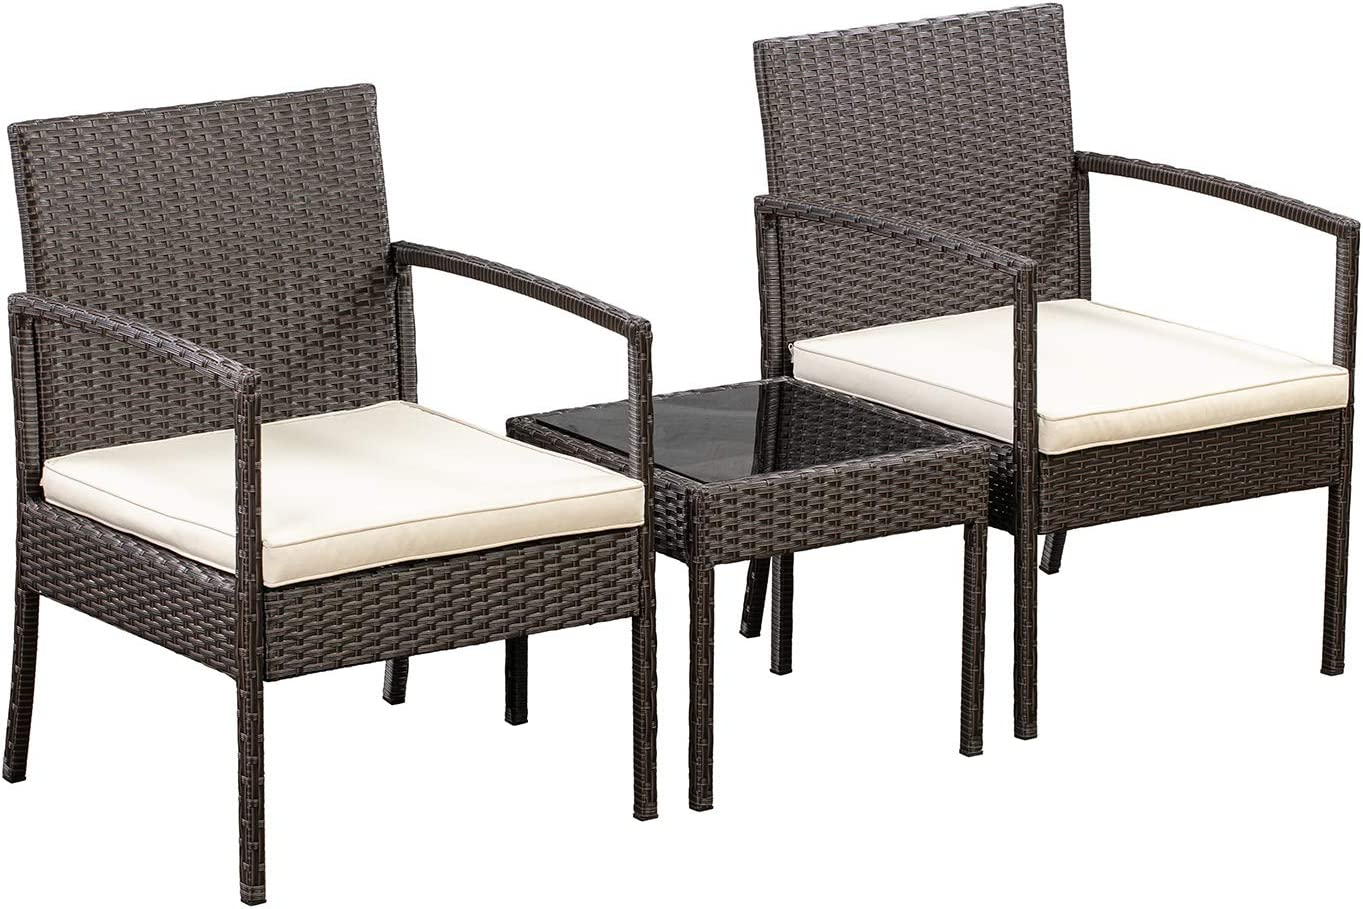 AmazonBasics Outdoor Patio Garden Faux Wicker Rattan Chair Conversation Set with Cushion - 3-Piece Set, Brown